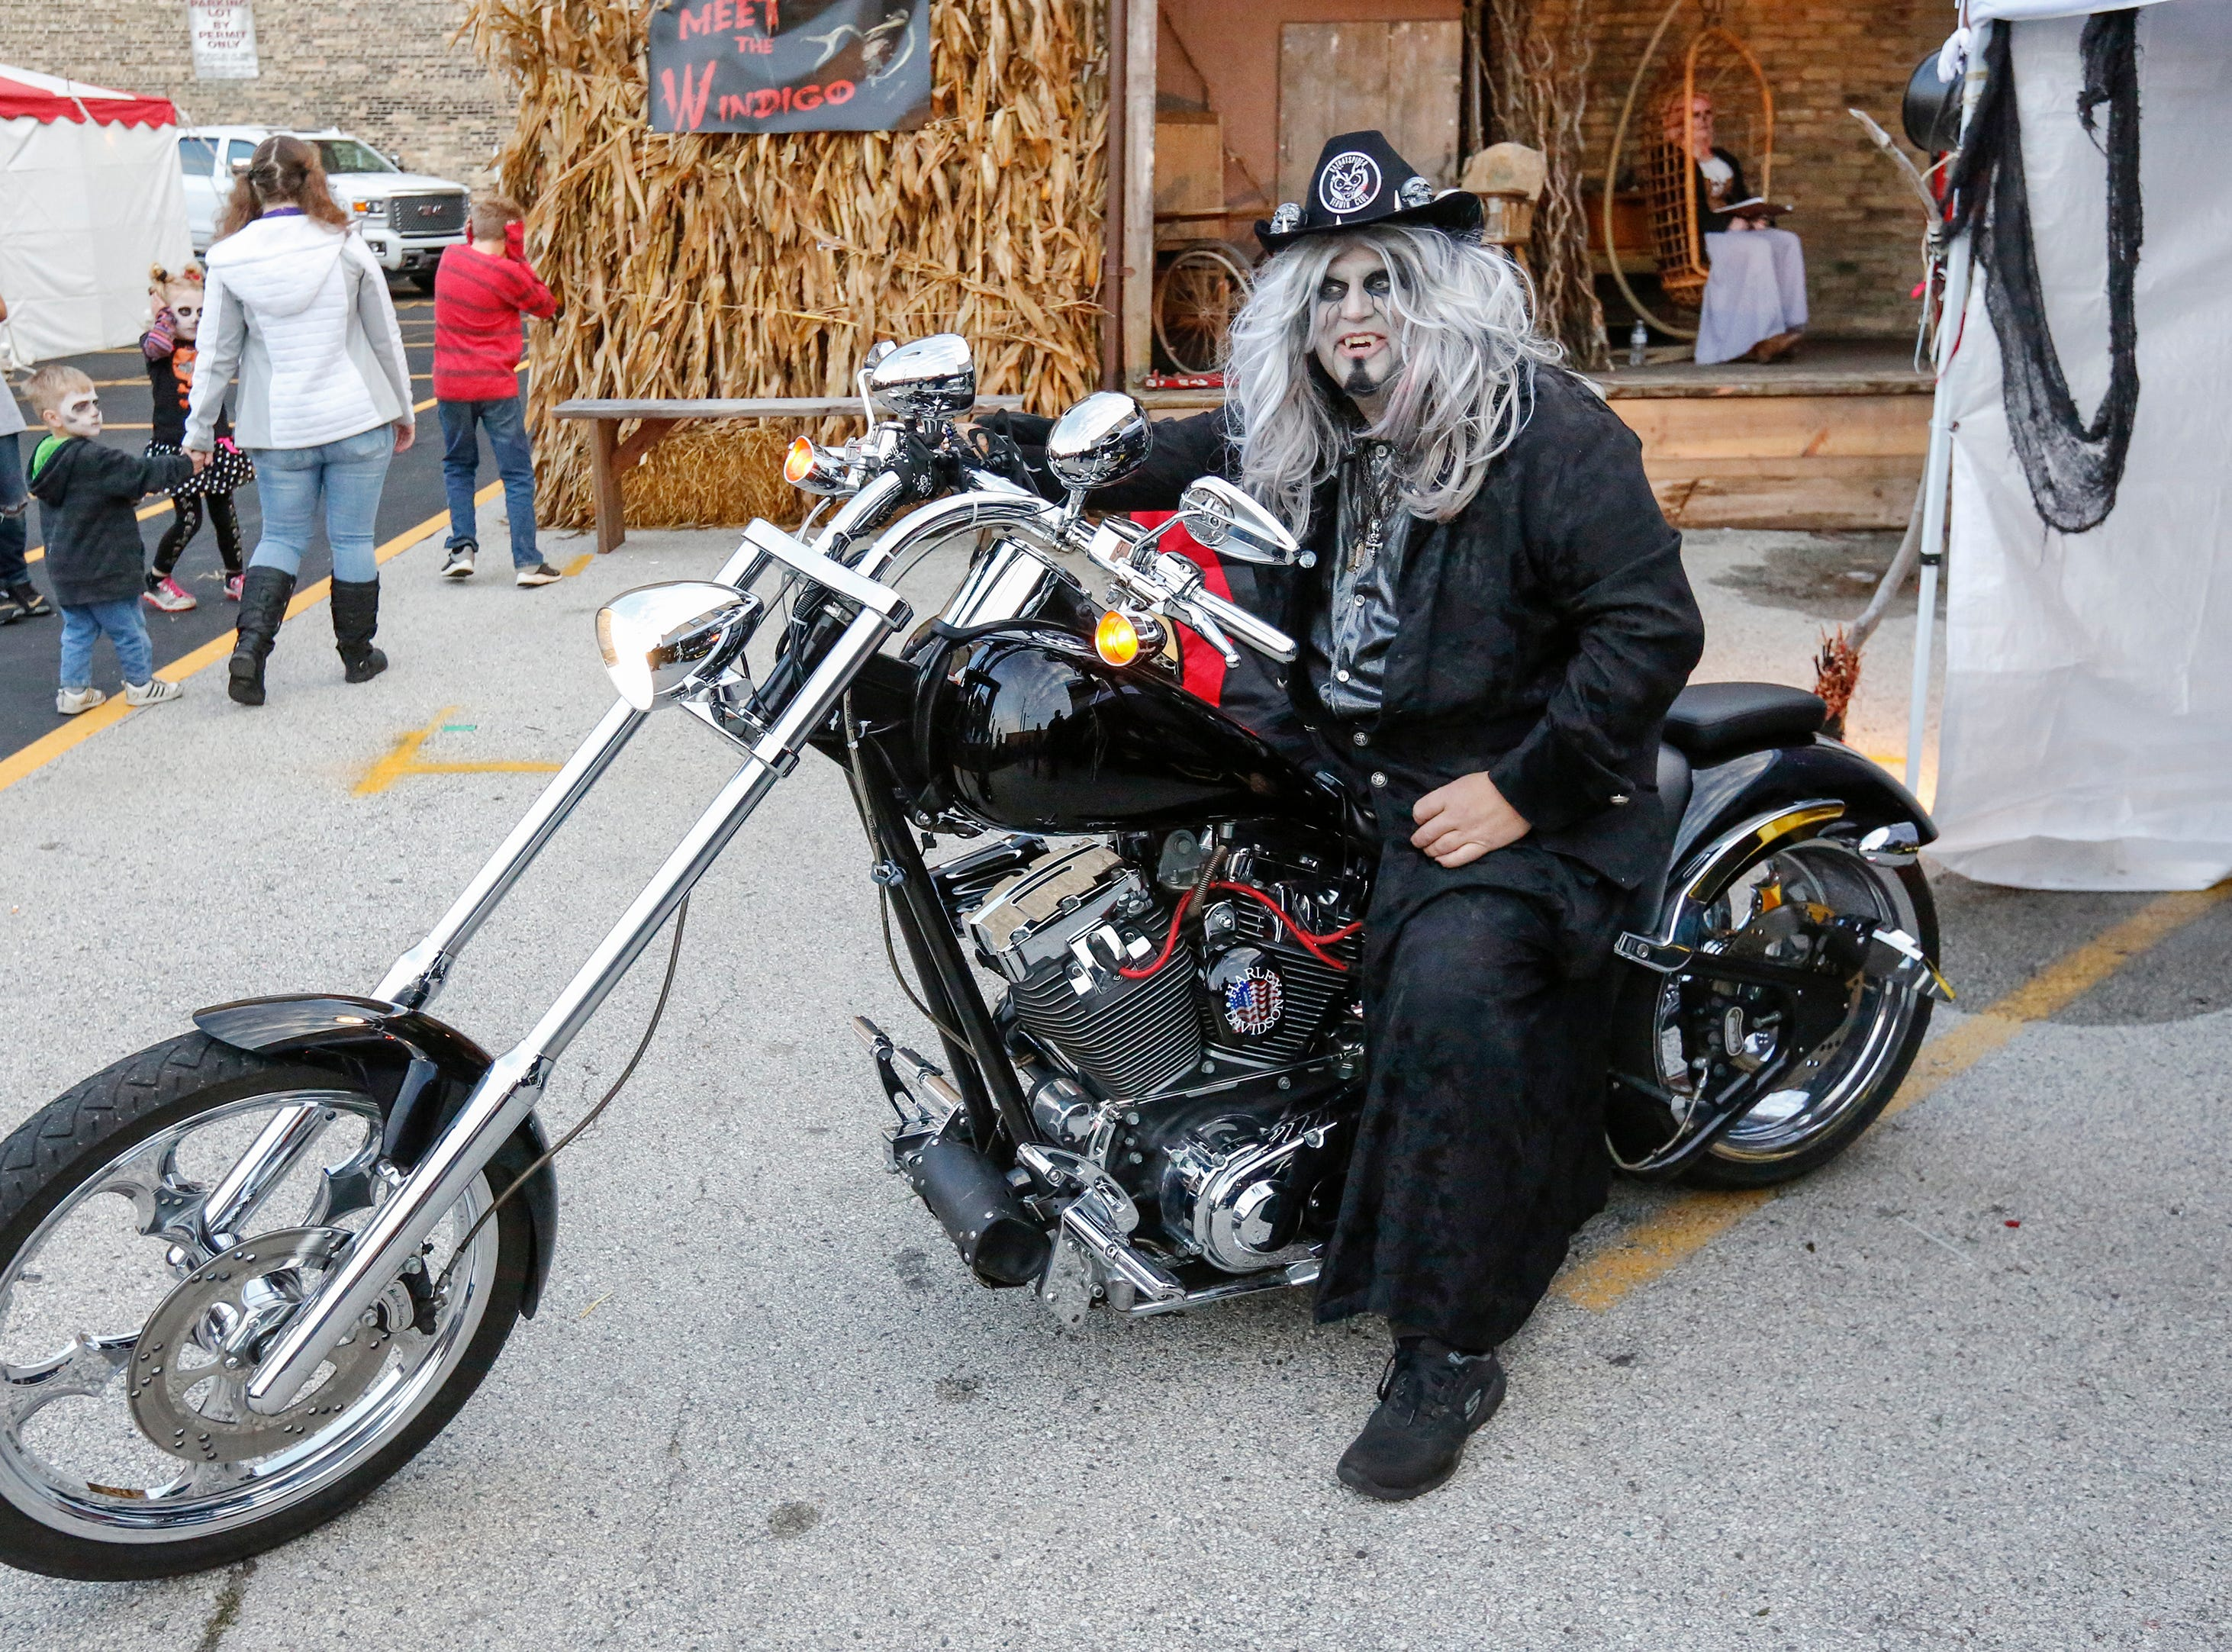 Deadgar Winter revs his motorcycle during Windigo Fest on Saturday, Oct. 6, 2018, in Manitowoc, Wis.